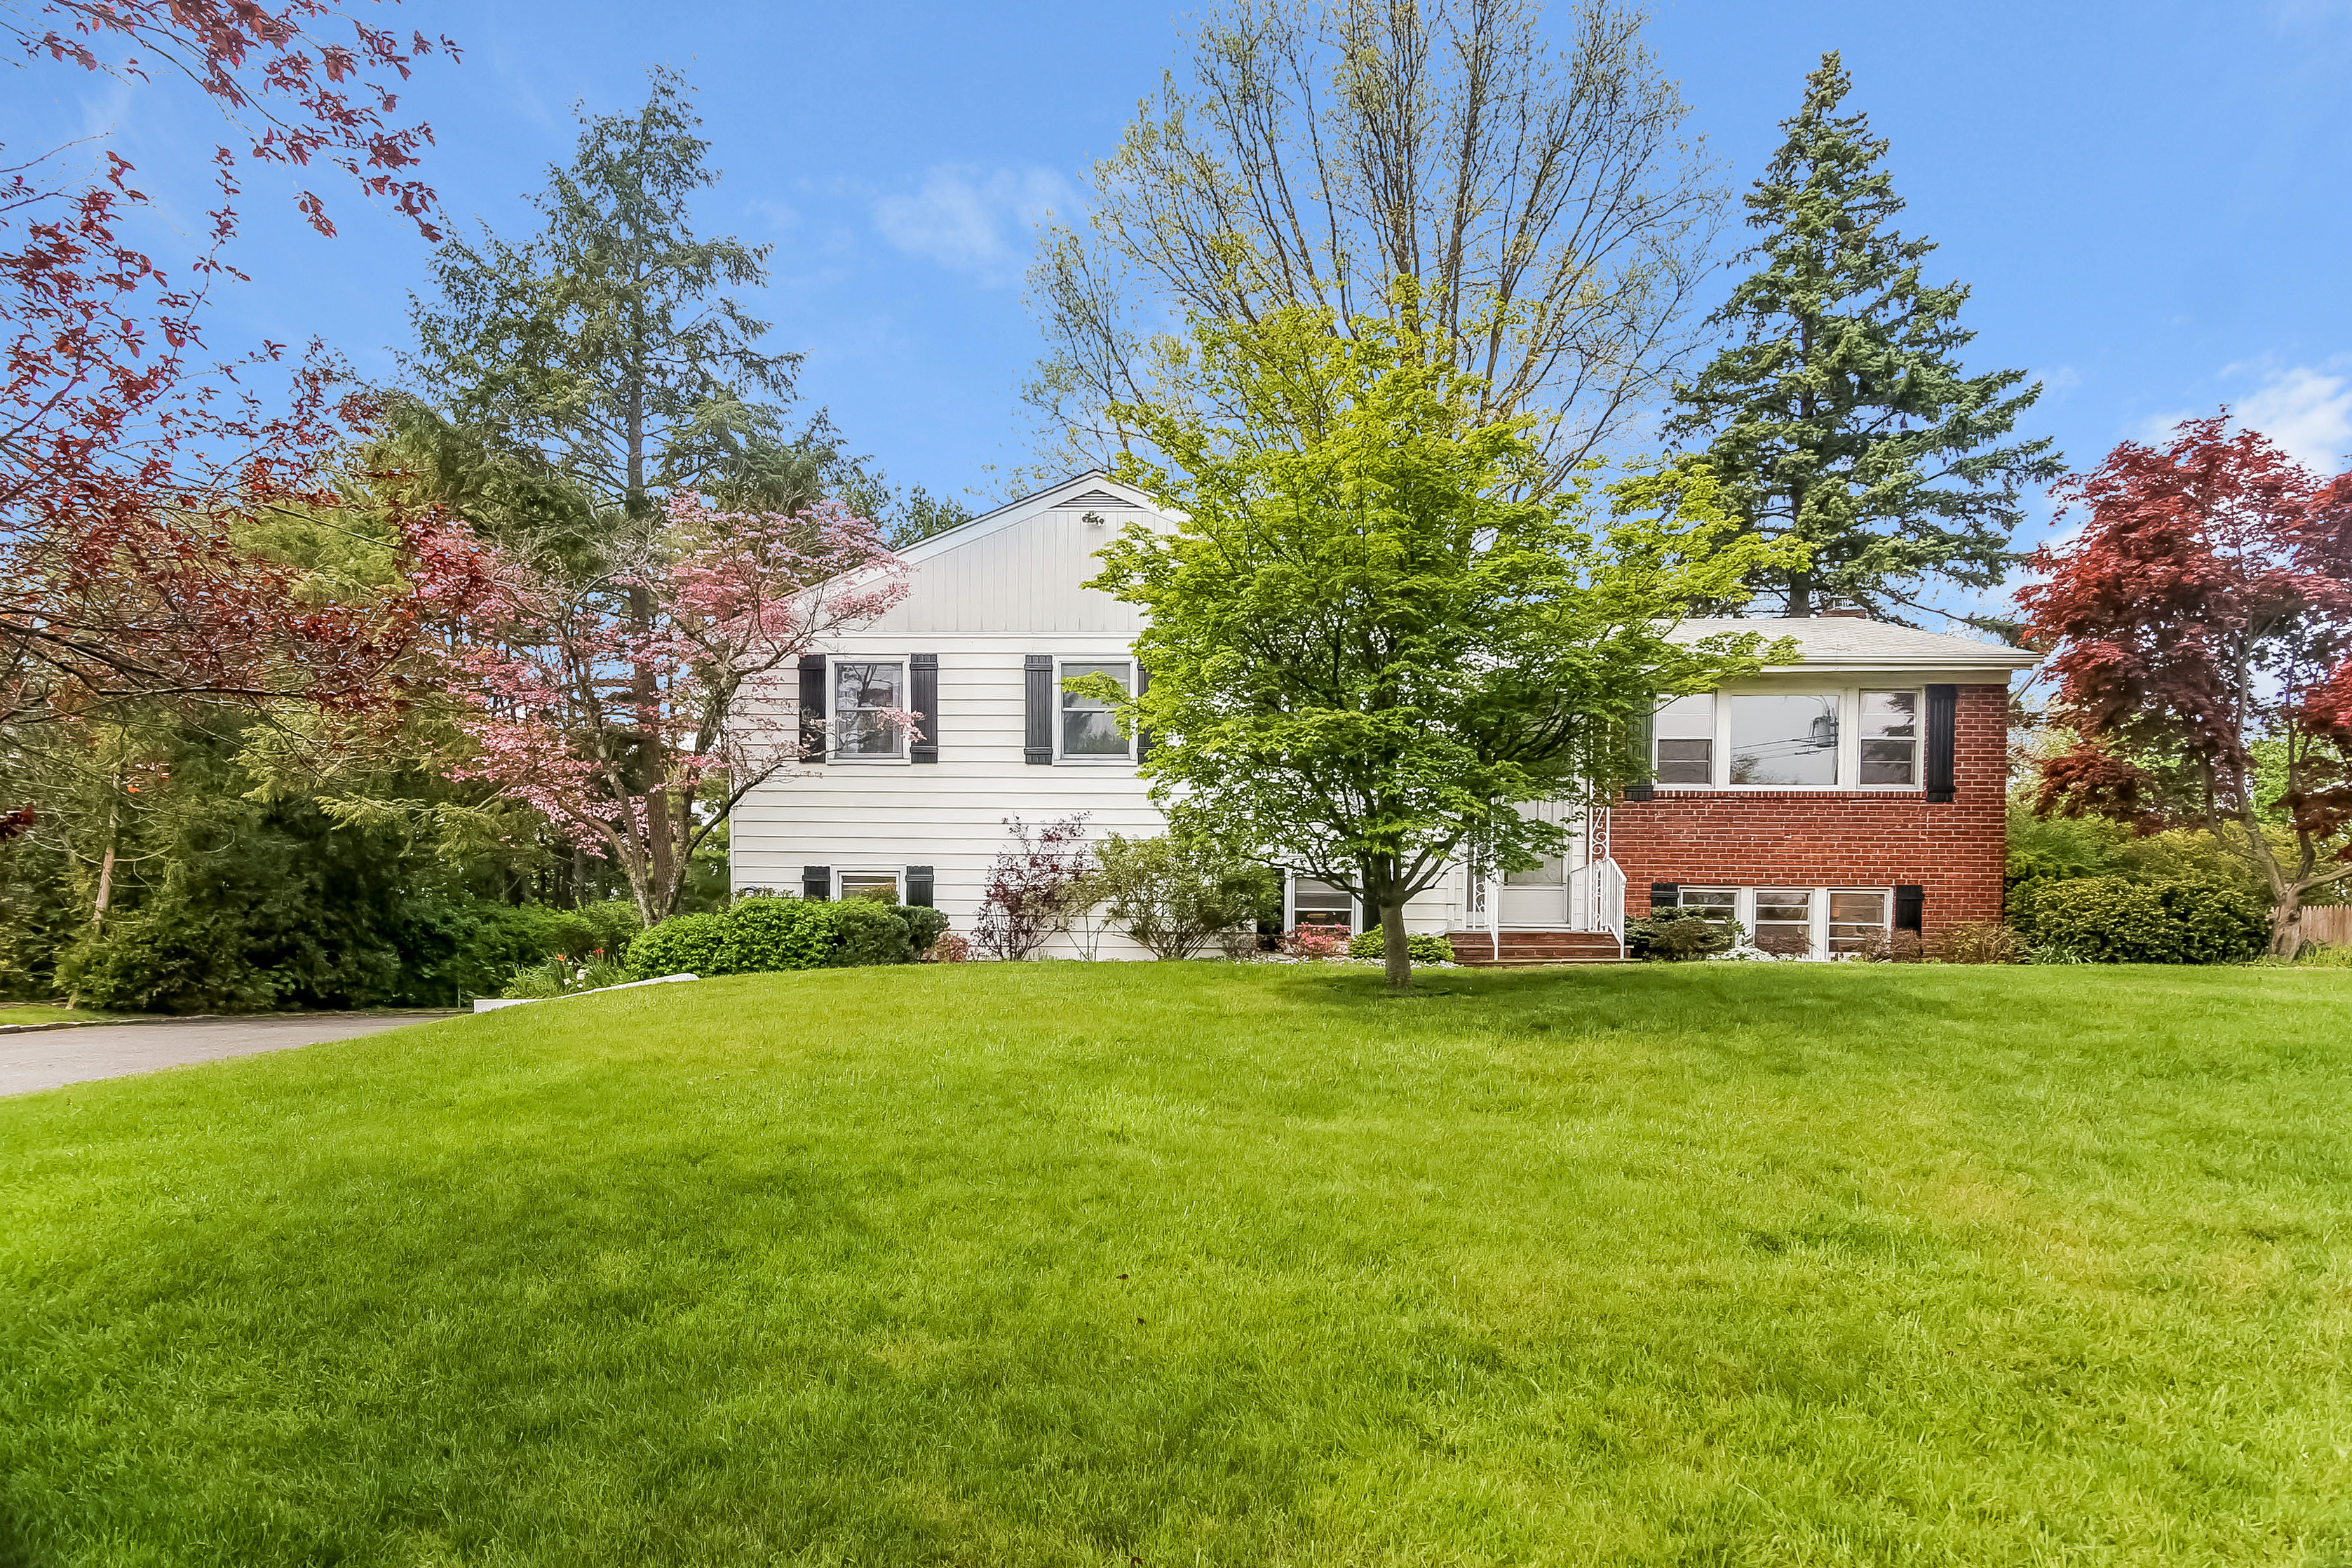 Single Family Home for Sale at 4 Whippoorwill Road Rye Brook, New York, 10573 United States